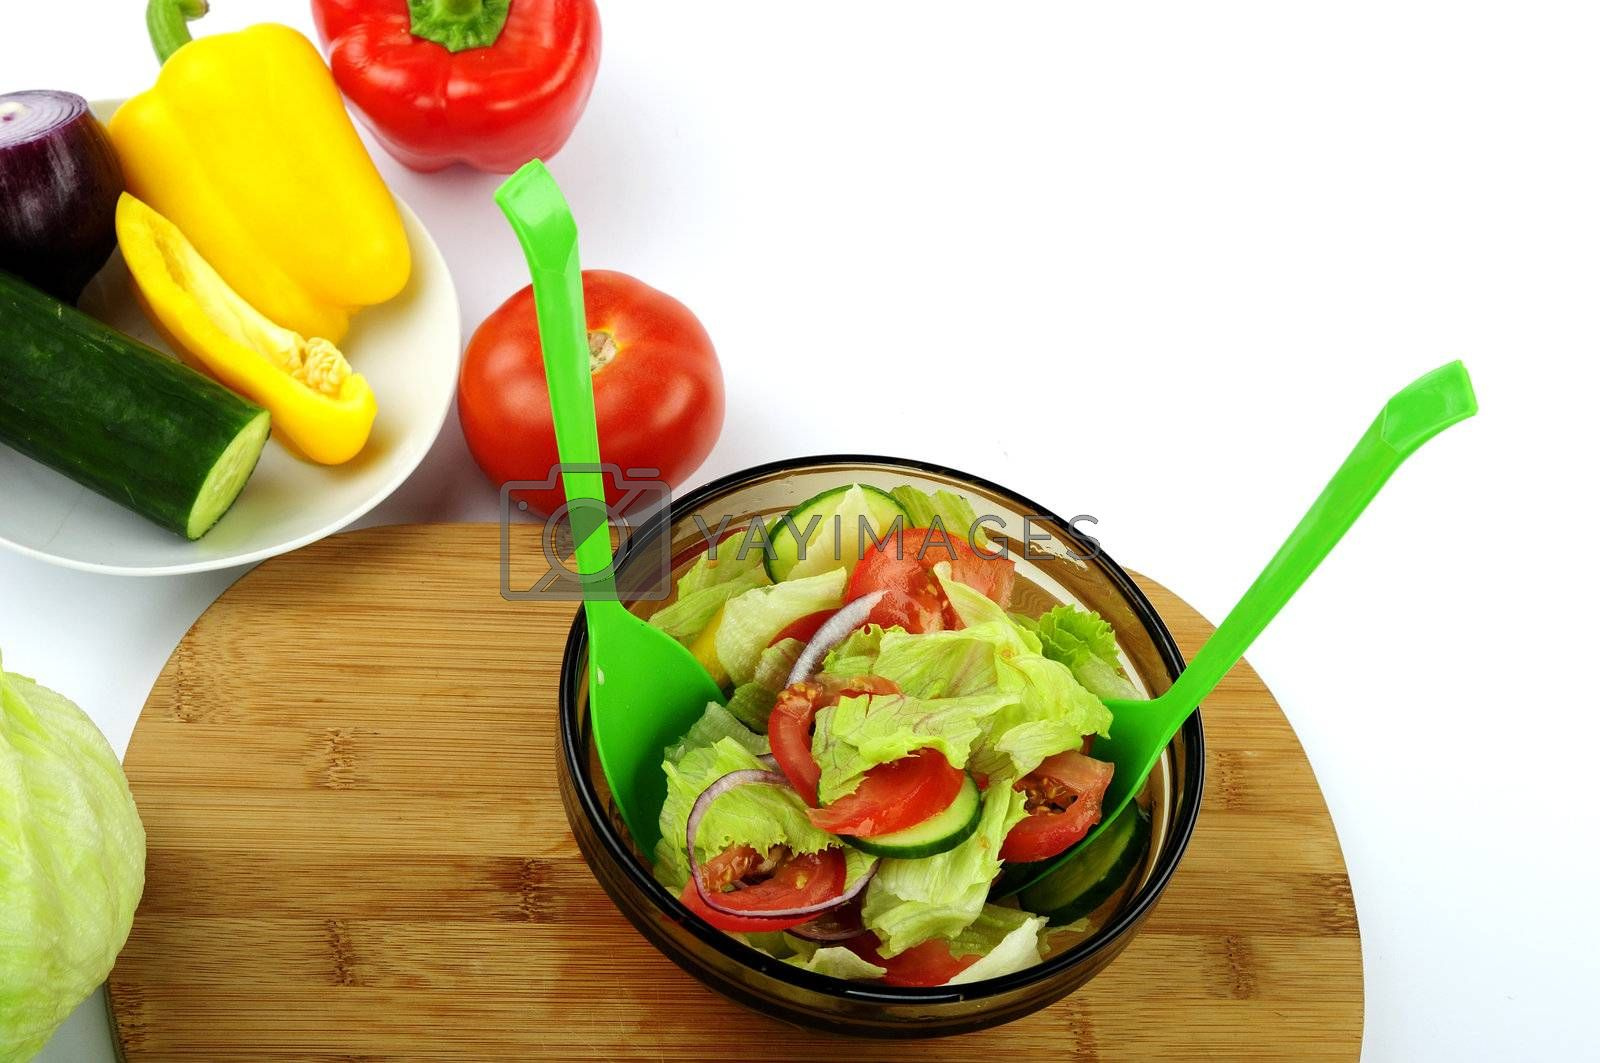 Royalty free image of salad by dundersztyc